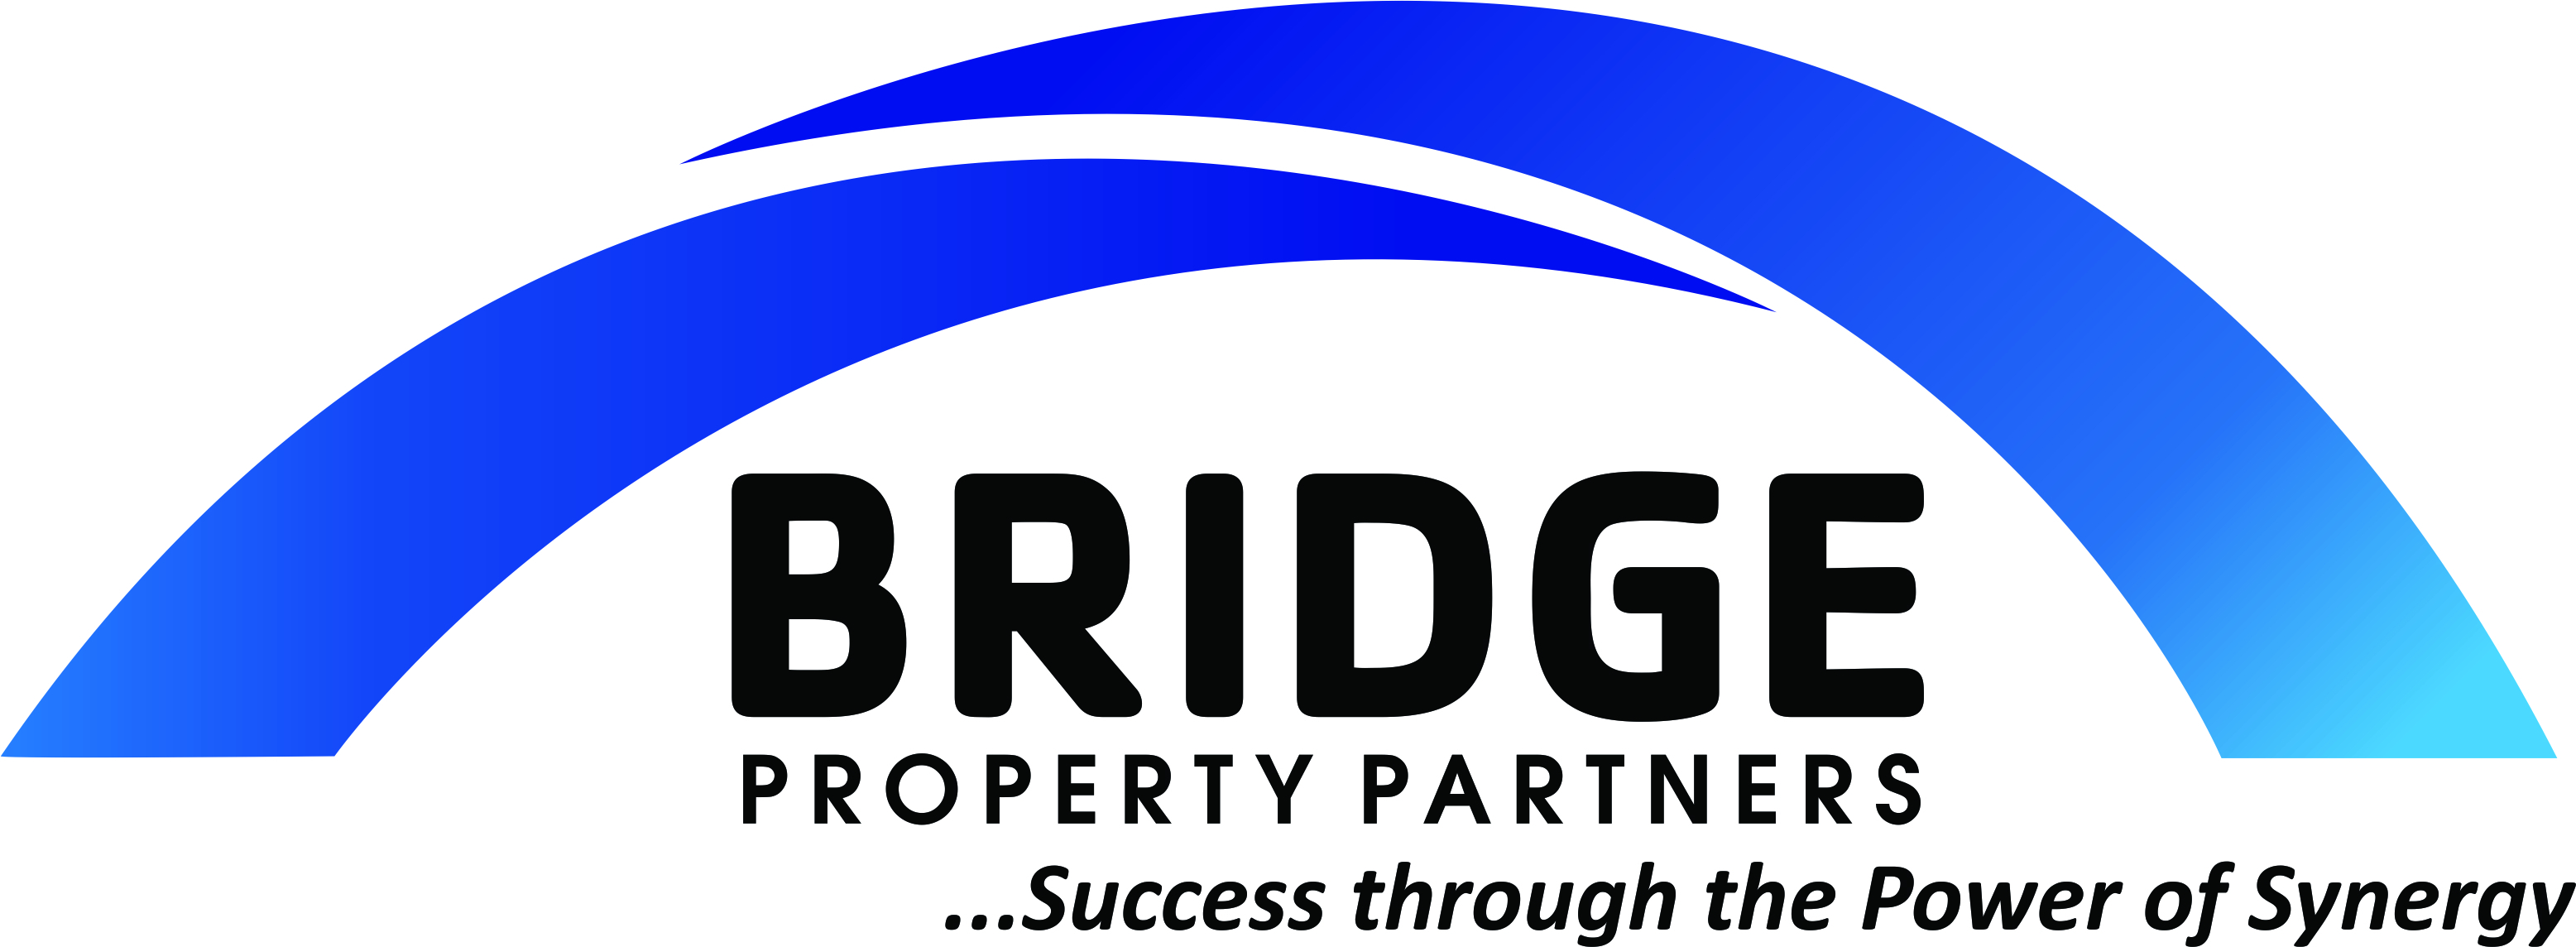 Bridge Property Partners